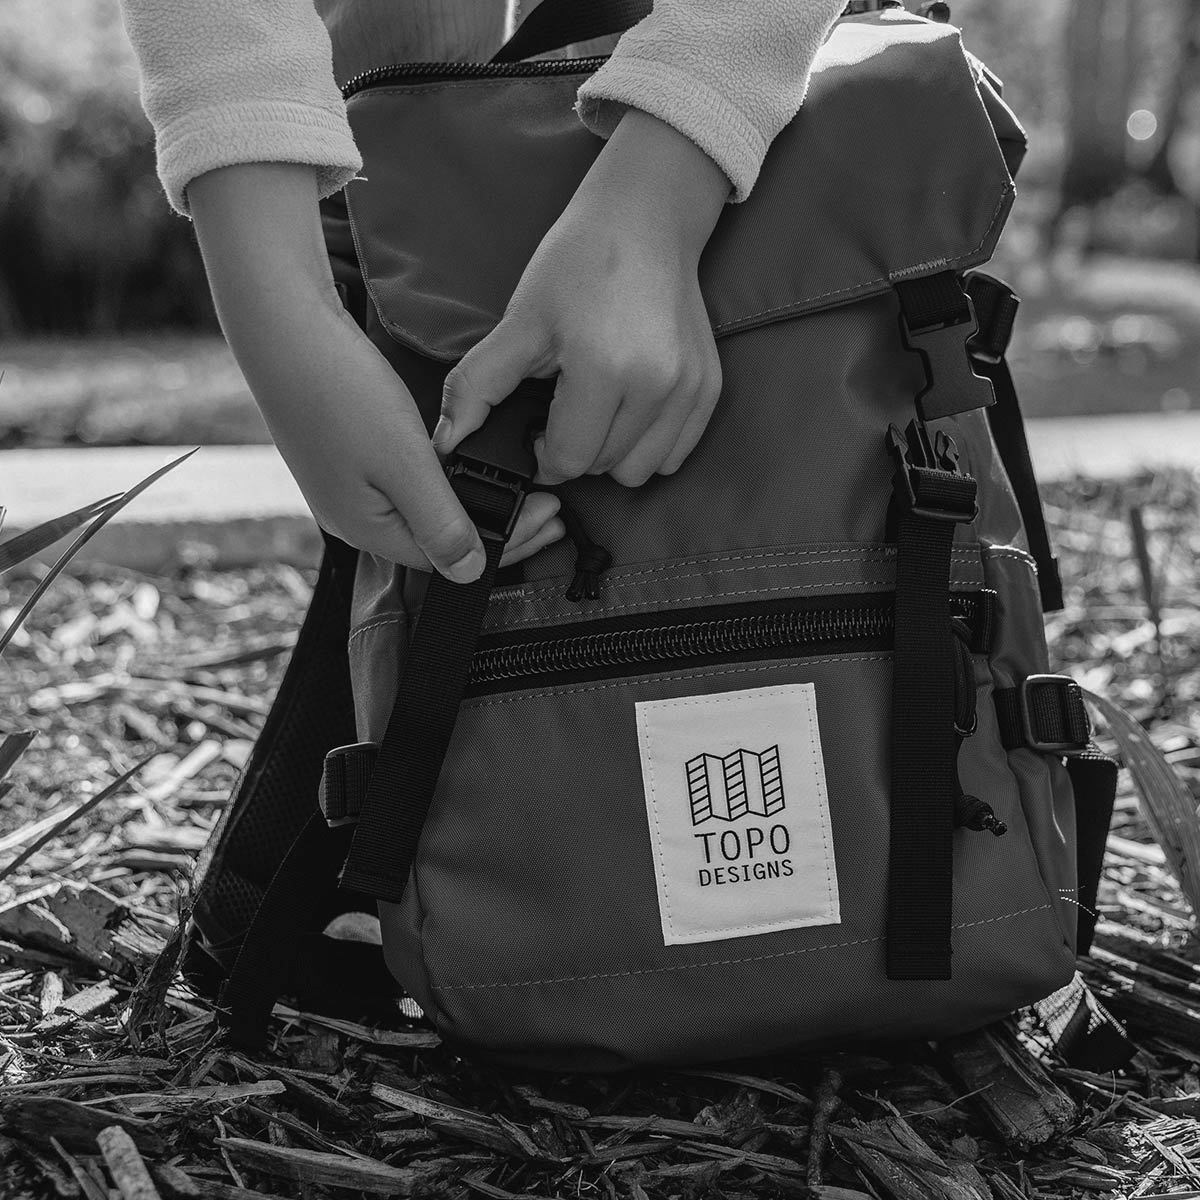 Topo Designs Rover Pack - Mini Black-Black, statement-making bag that's the perfect size for errands around town or on the trail